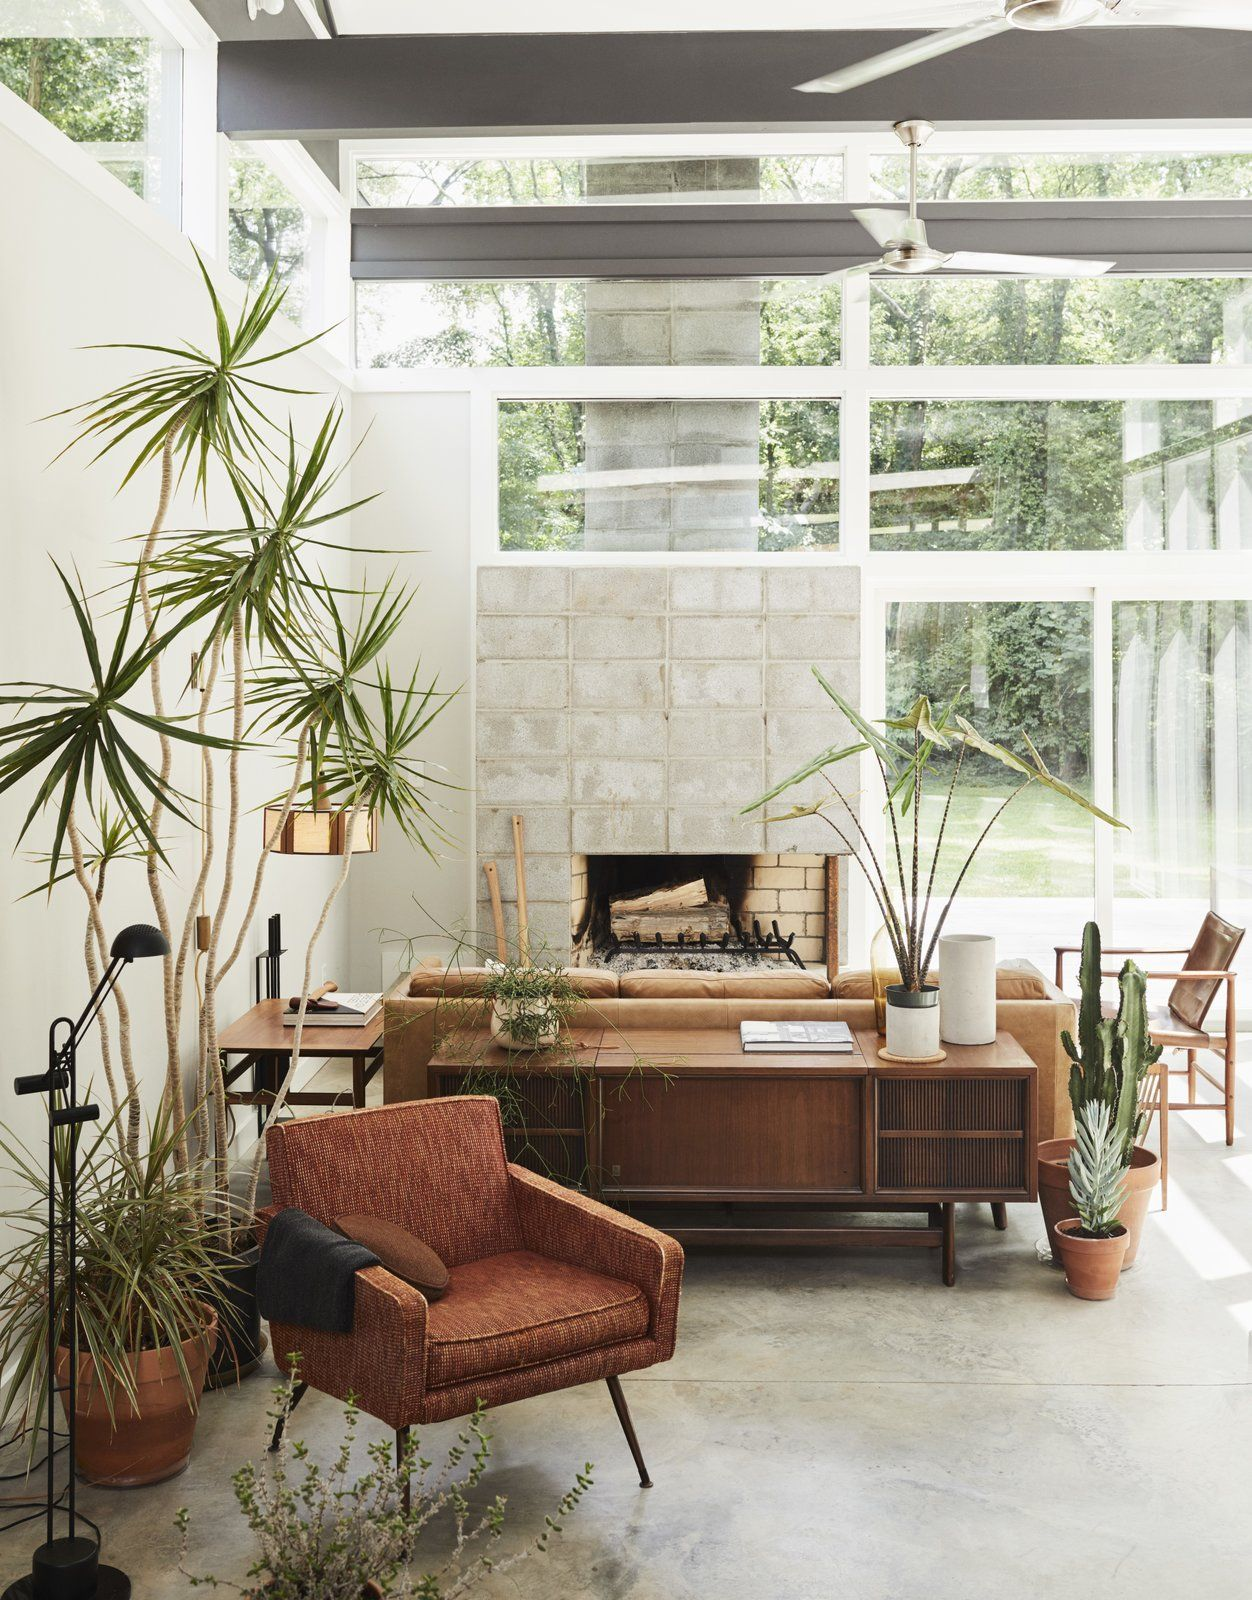 A selftaught designer builds a midcenturyinspired home on a budget